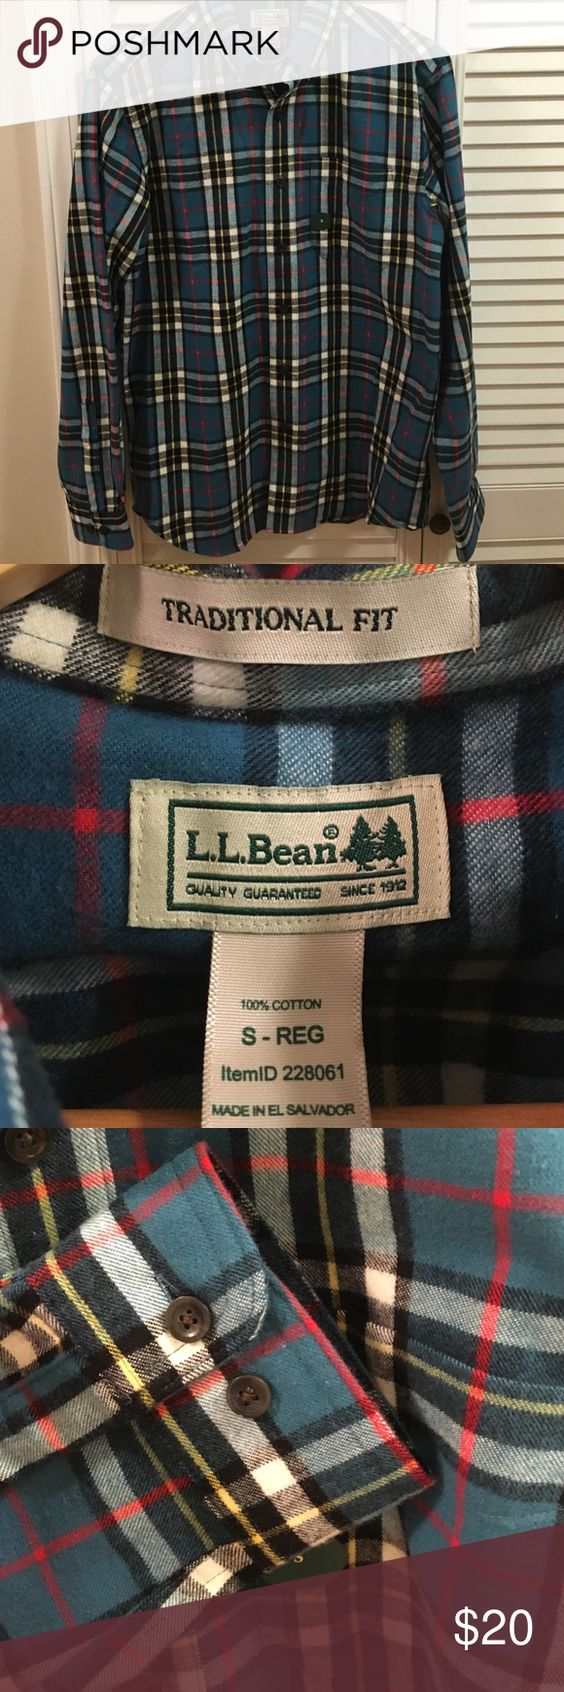 LL Bean Men's New without tags flannel LL Bean Men's New without tags Flannel. Excellent condition. never worn or washed. From last Christmas - never worn. Currently retailing for 45 on website. L.L. Bean Shirts Casual Button Down Shirts